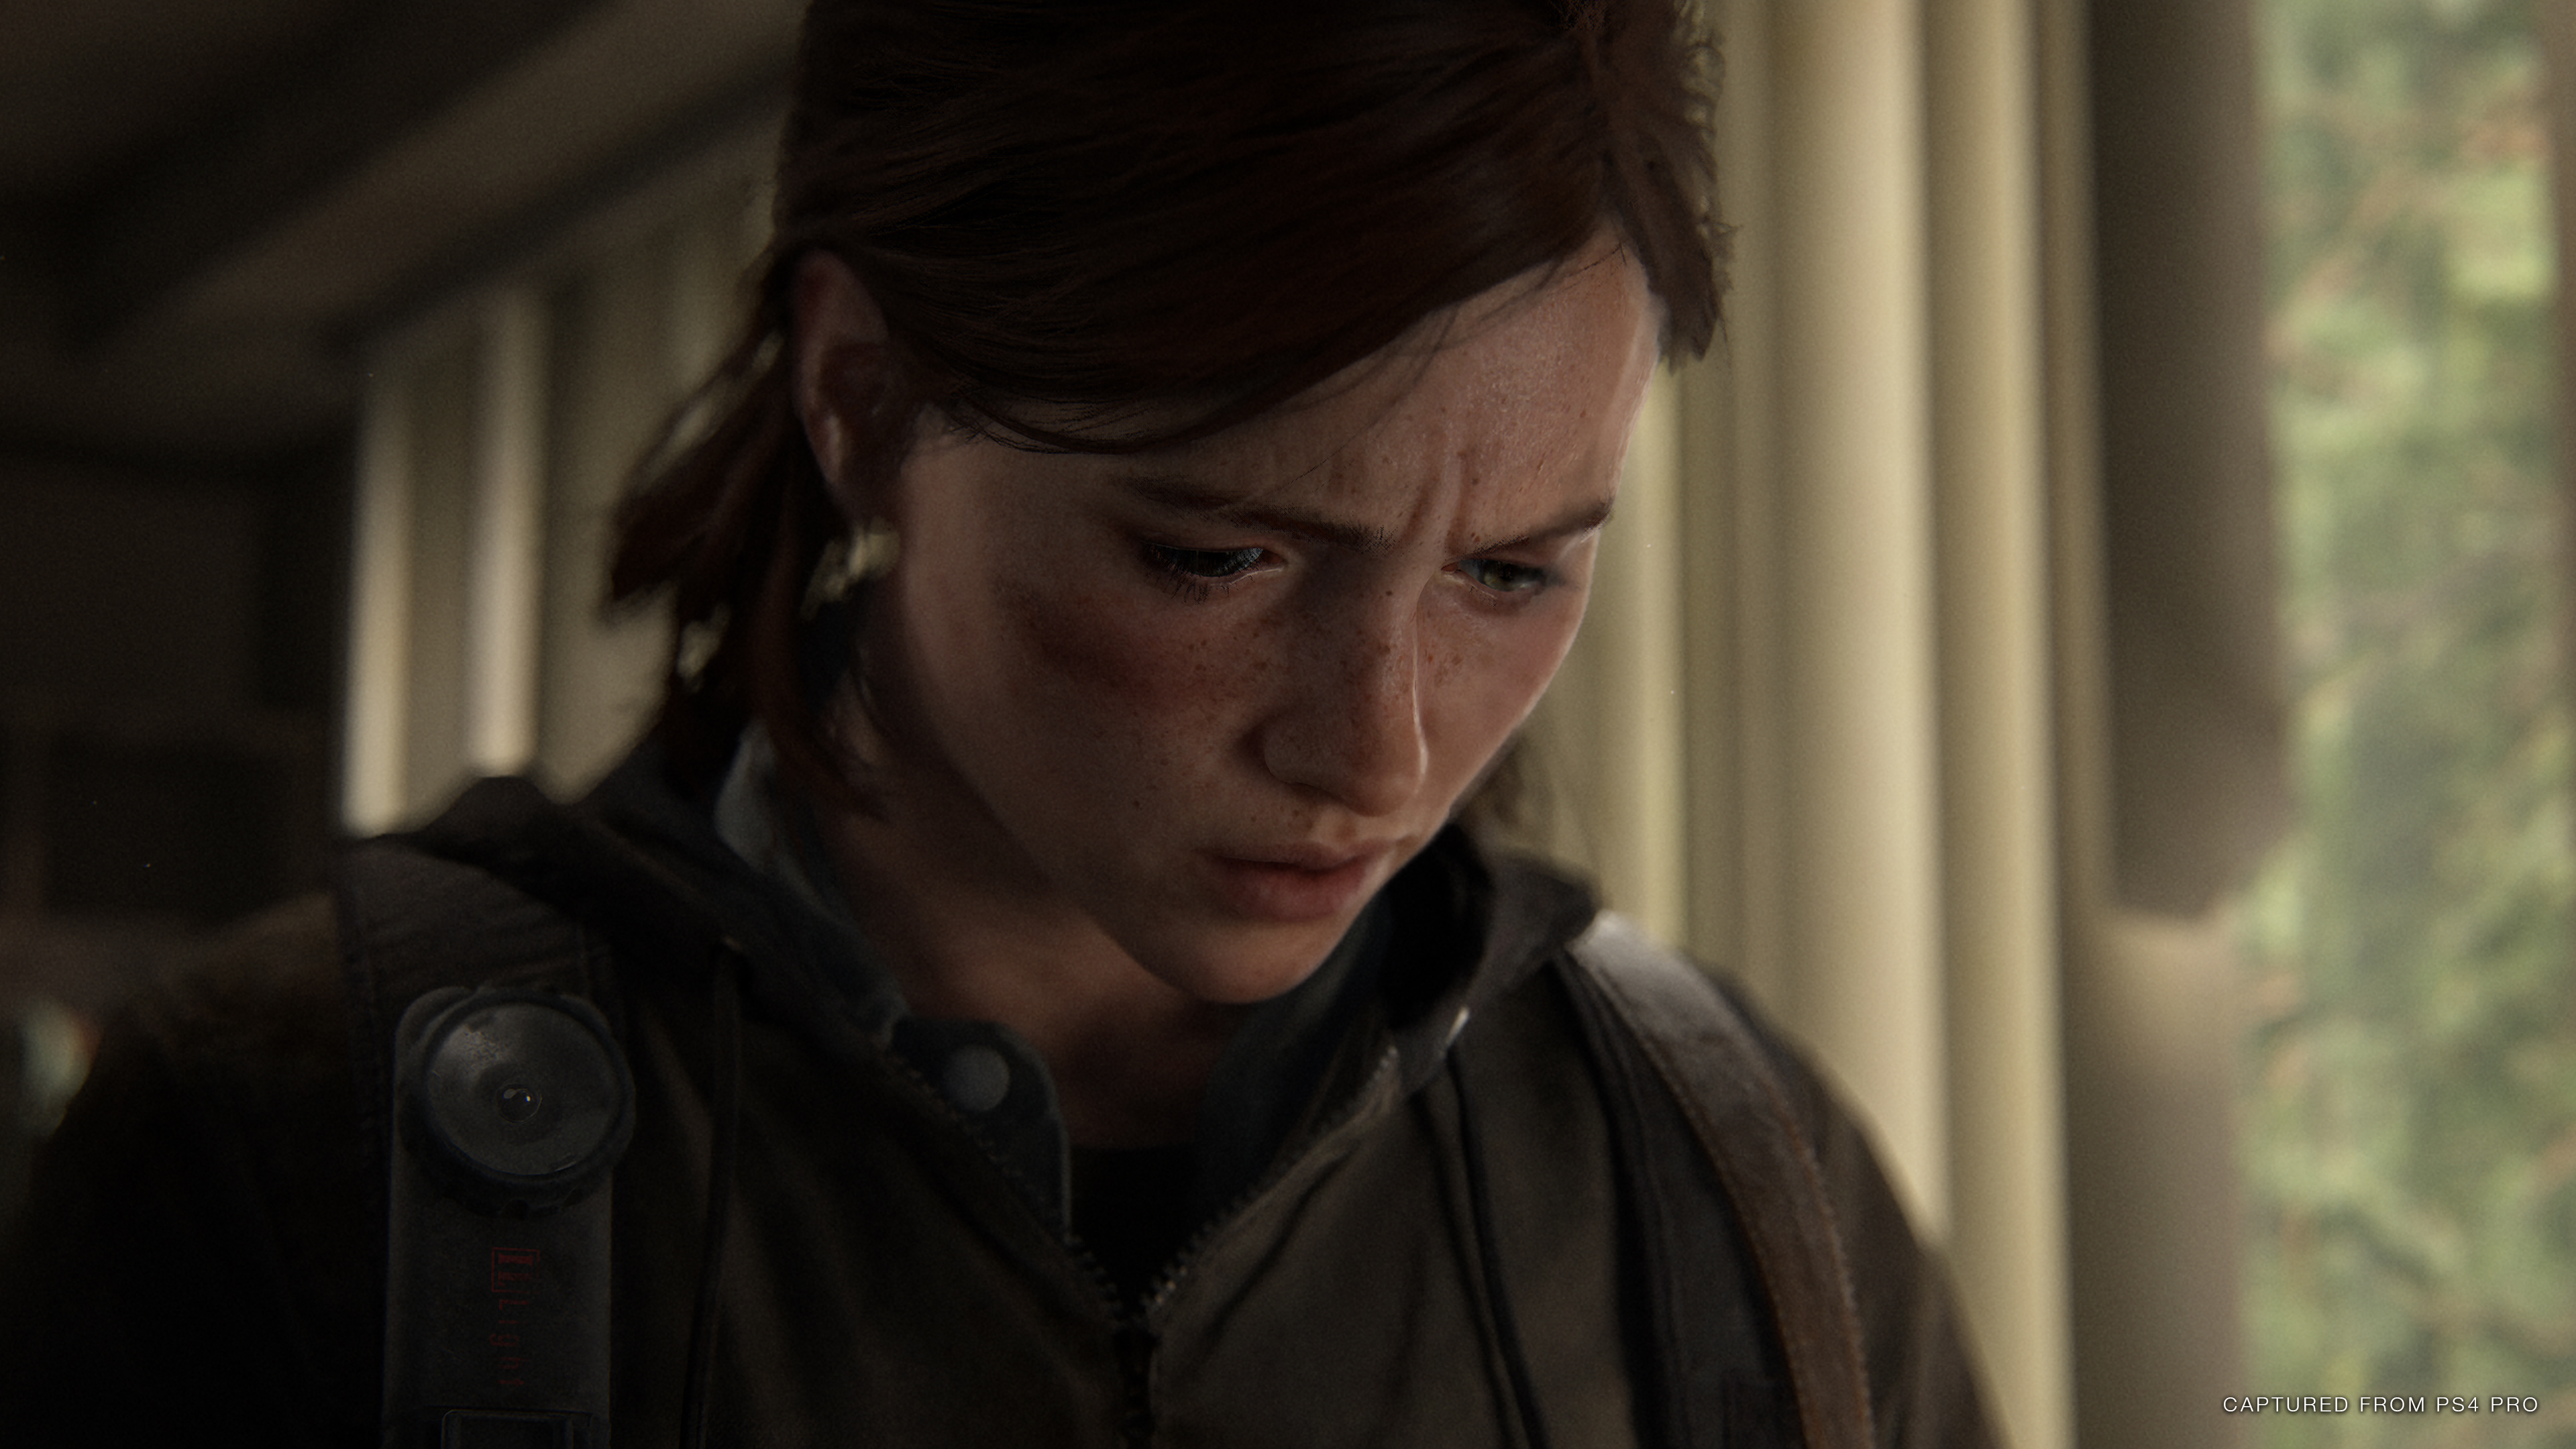 The Last Of Us 2 Ending Explained A Spoiler Filled Look At What It All Means Gamesradar